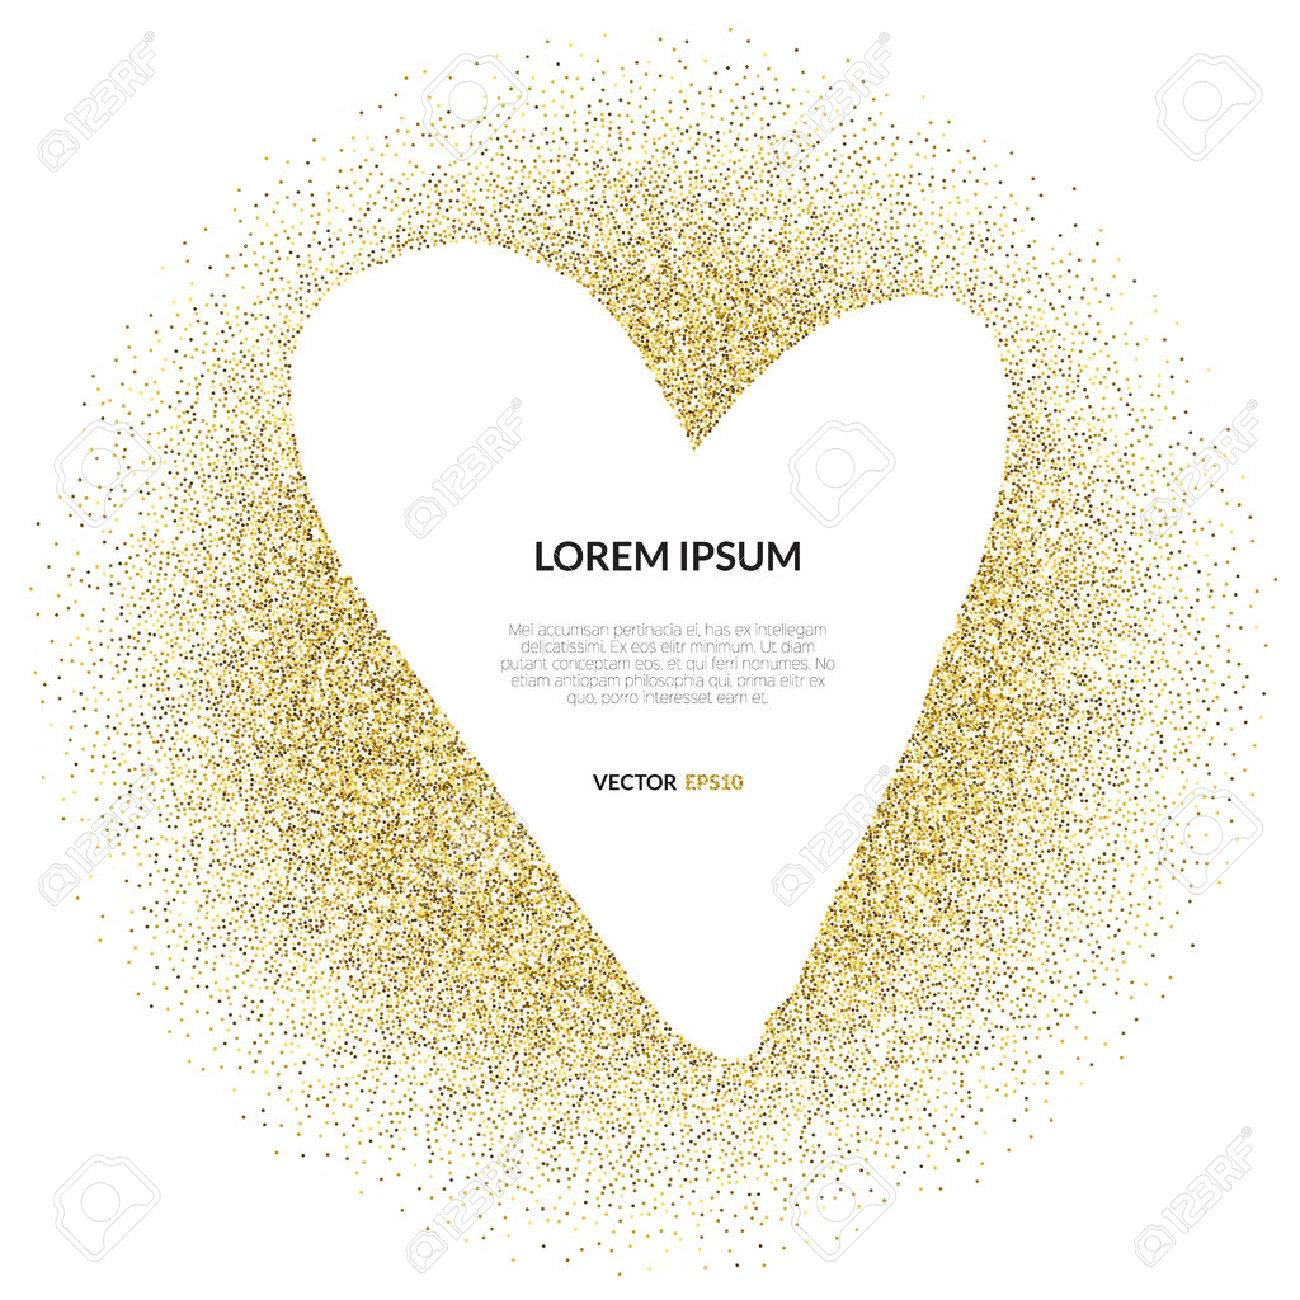 Abstract vector background with gold glitter and a shape of a heart. 100% vector - easy to use and edit. Gold sparkles isolated on white with place for your text. Design for wedding card, valentine, save the date. - 50367154